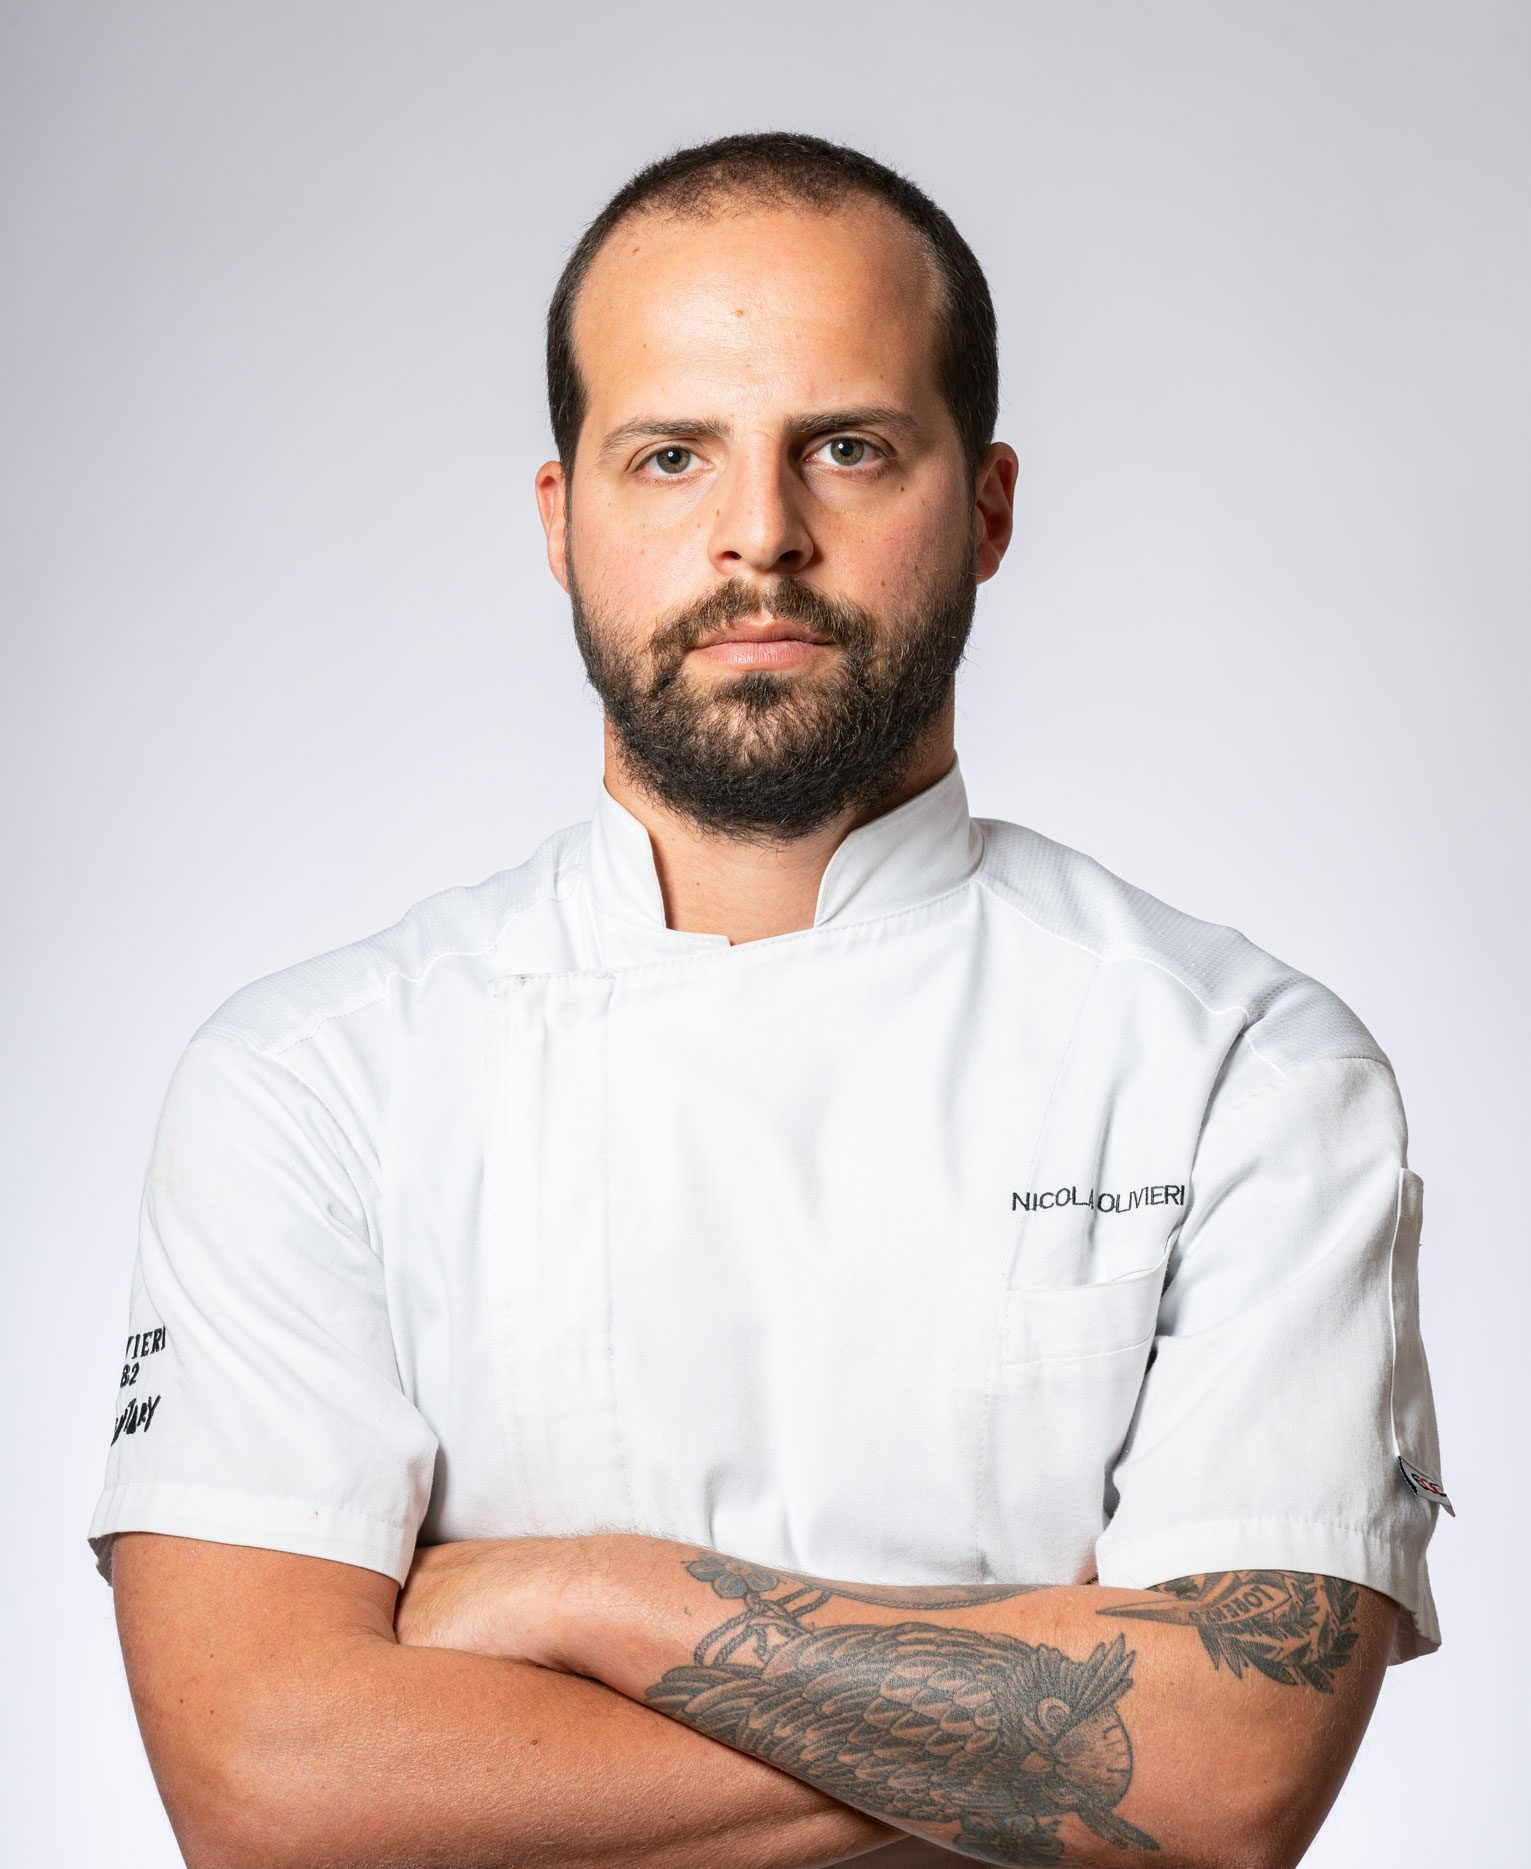 A professional portrait of Nicola Olivieri in his chef's uniform.